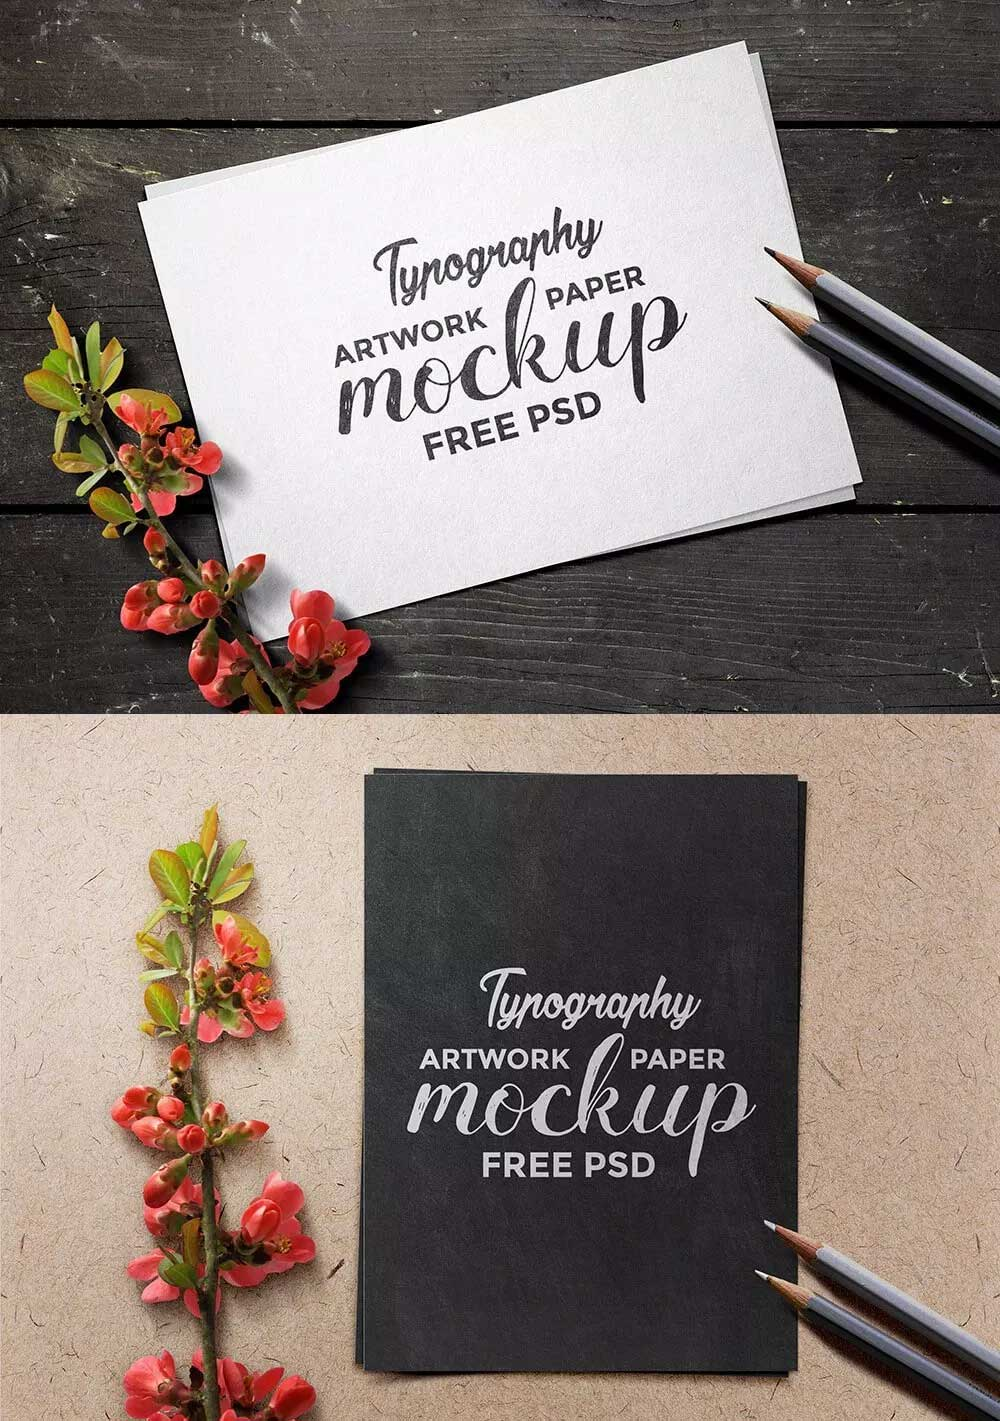 Typography Artwork Paper Mockup PSD